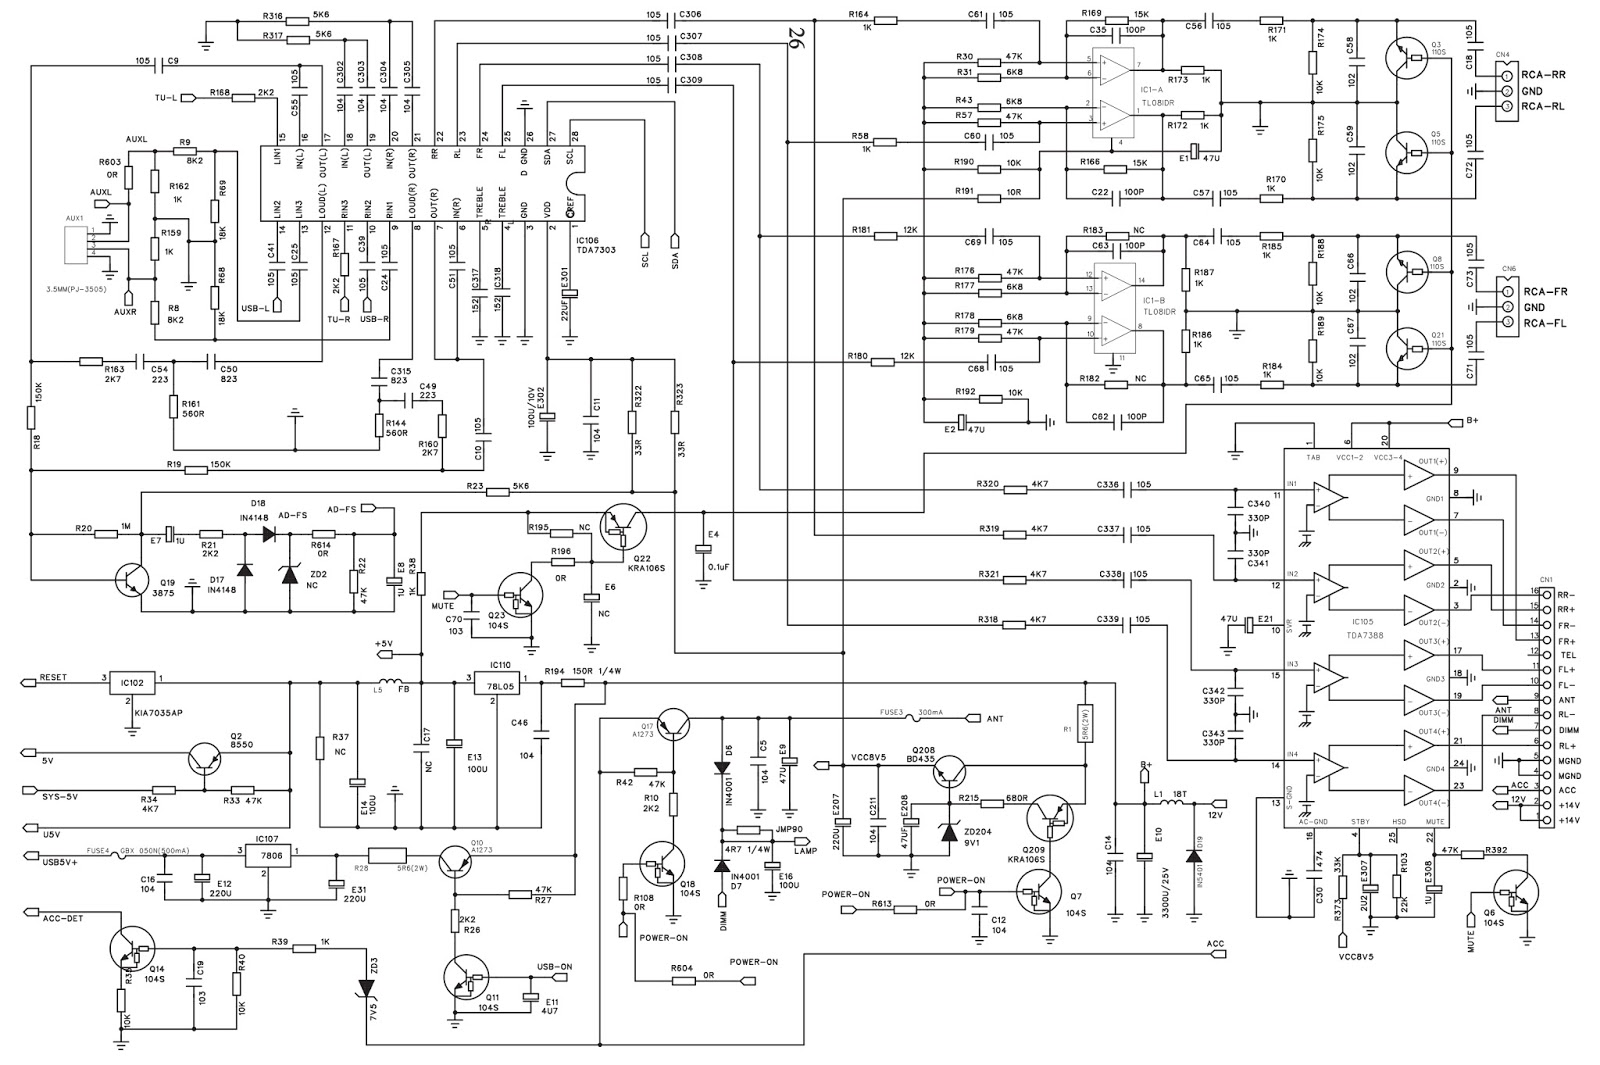 electro help  h-buster hbdu-3200 - car audio system - schematic diagram